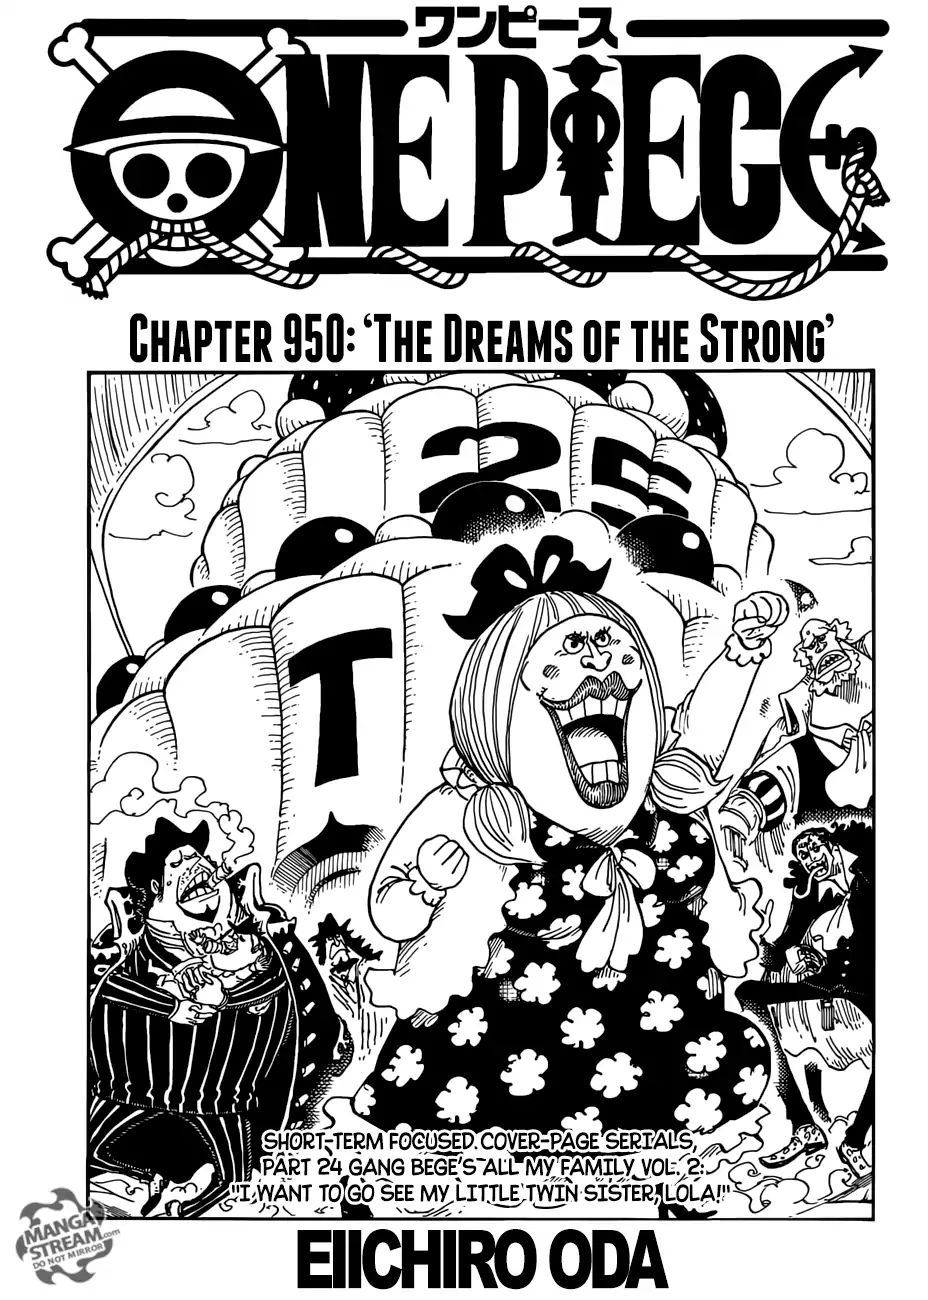 One Piece Chapter 950 The Dreams Of The Strong Page 2 Manganelo Com One Piece Chapter One Piece Manga Read One Piece Manga